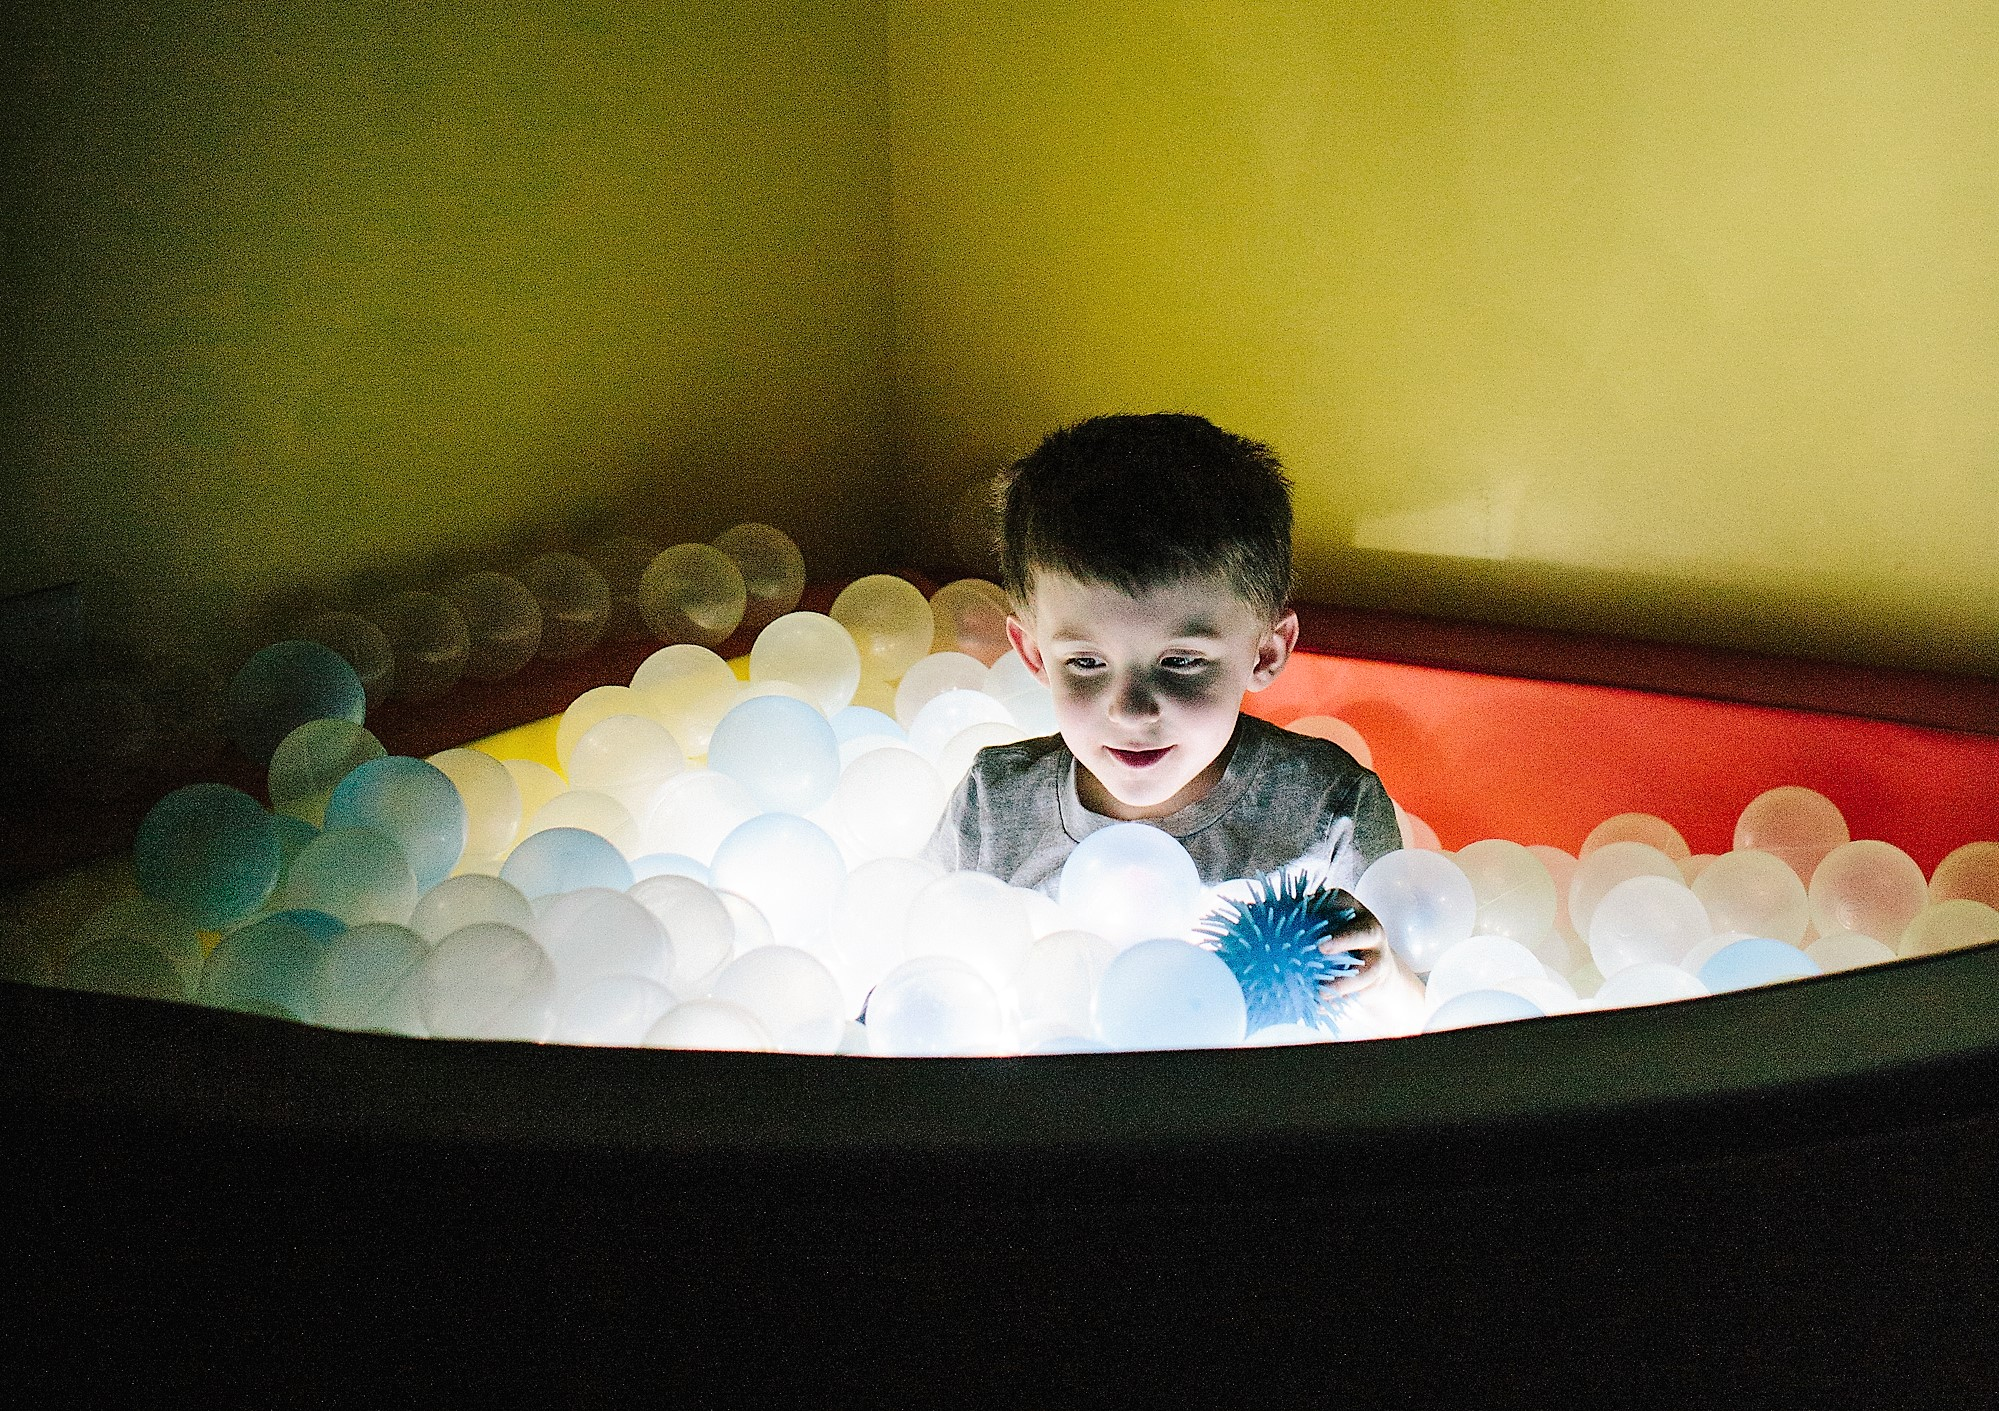 Tri-county Therapy Glowing Ball Pit